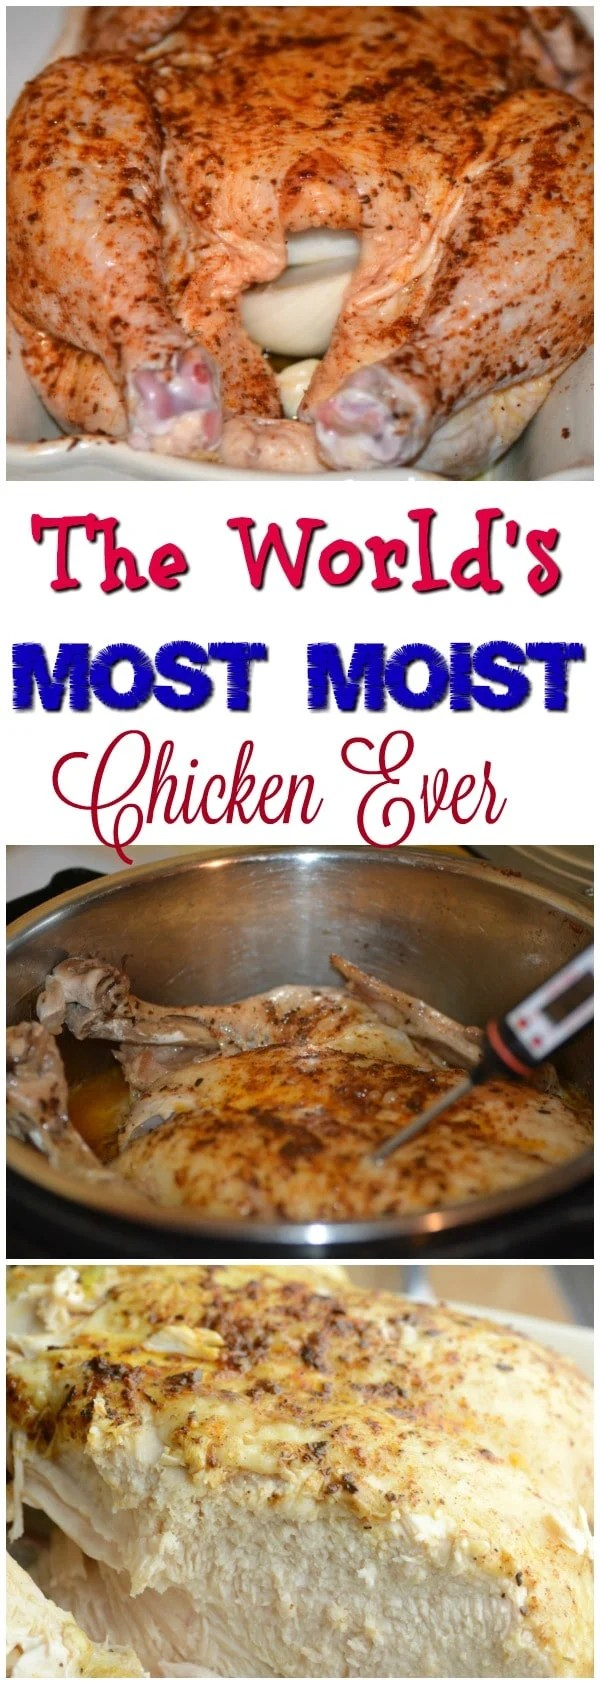 The World's Most Moist Chicken Ever